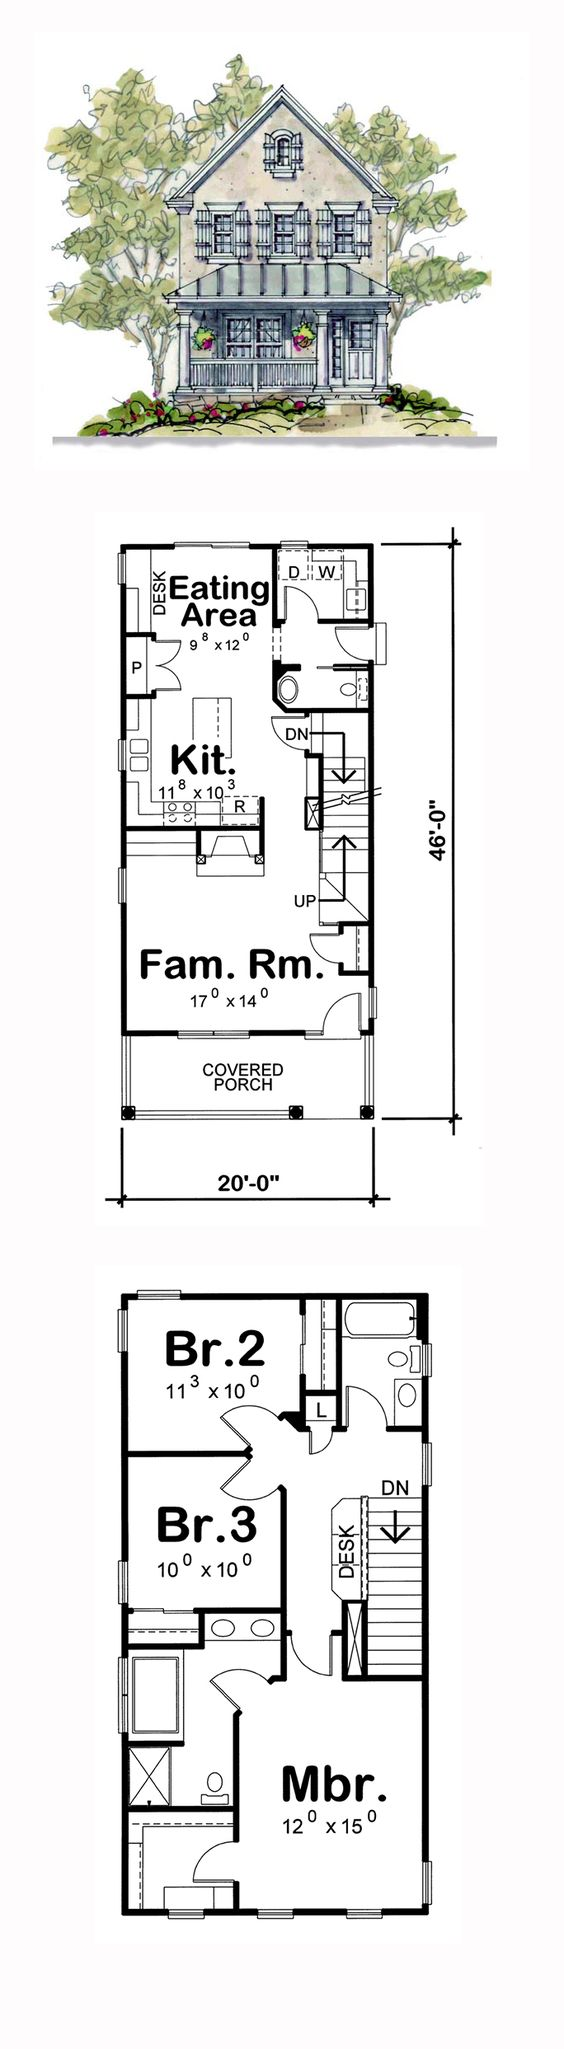 Narrow lot house plans house plans and bedrooms on pinterest for House plans for wide but shallow lots